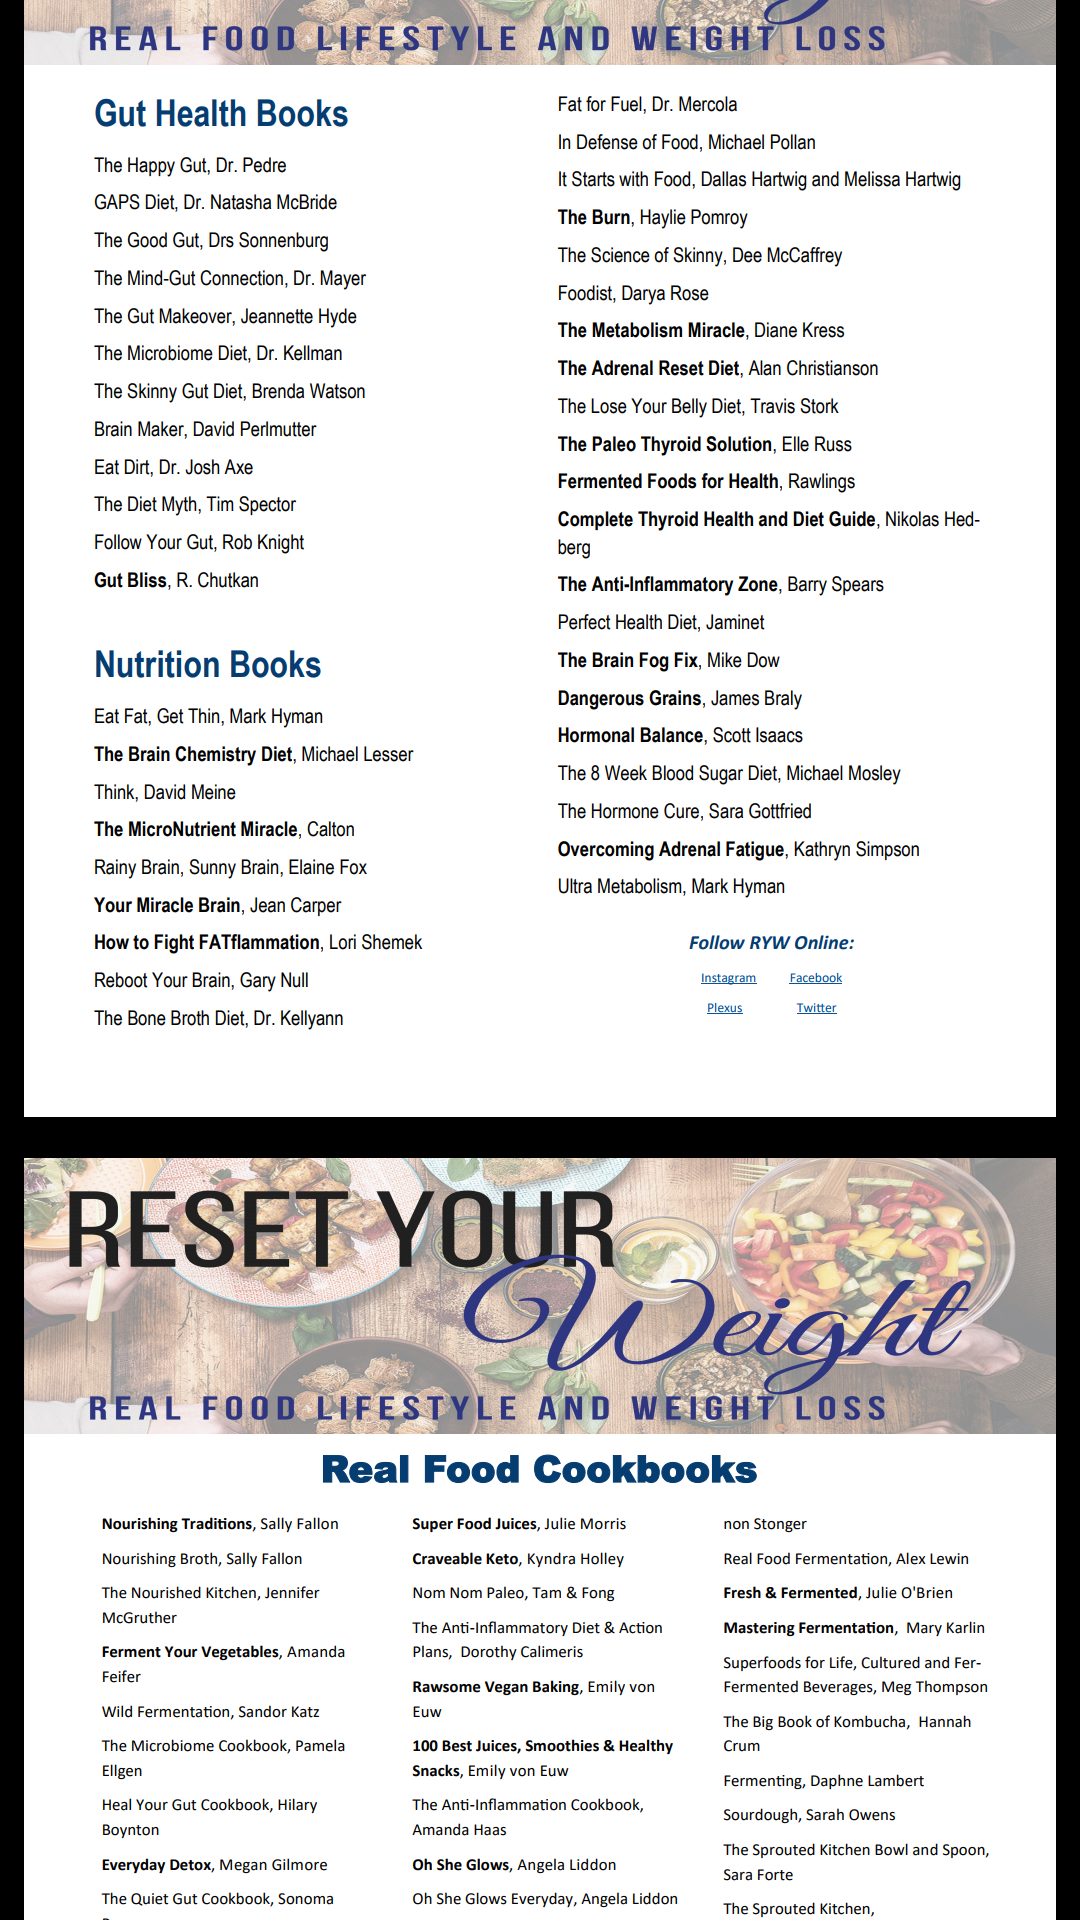 resources, weight loss, real food lifestyle, gut health, wellness, probiotics, cookbooks, nutrition